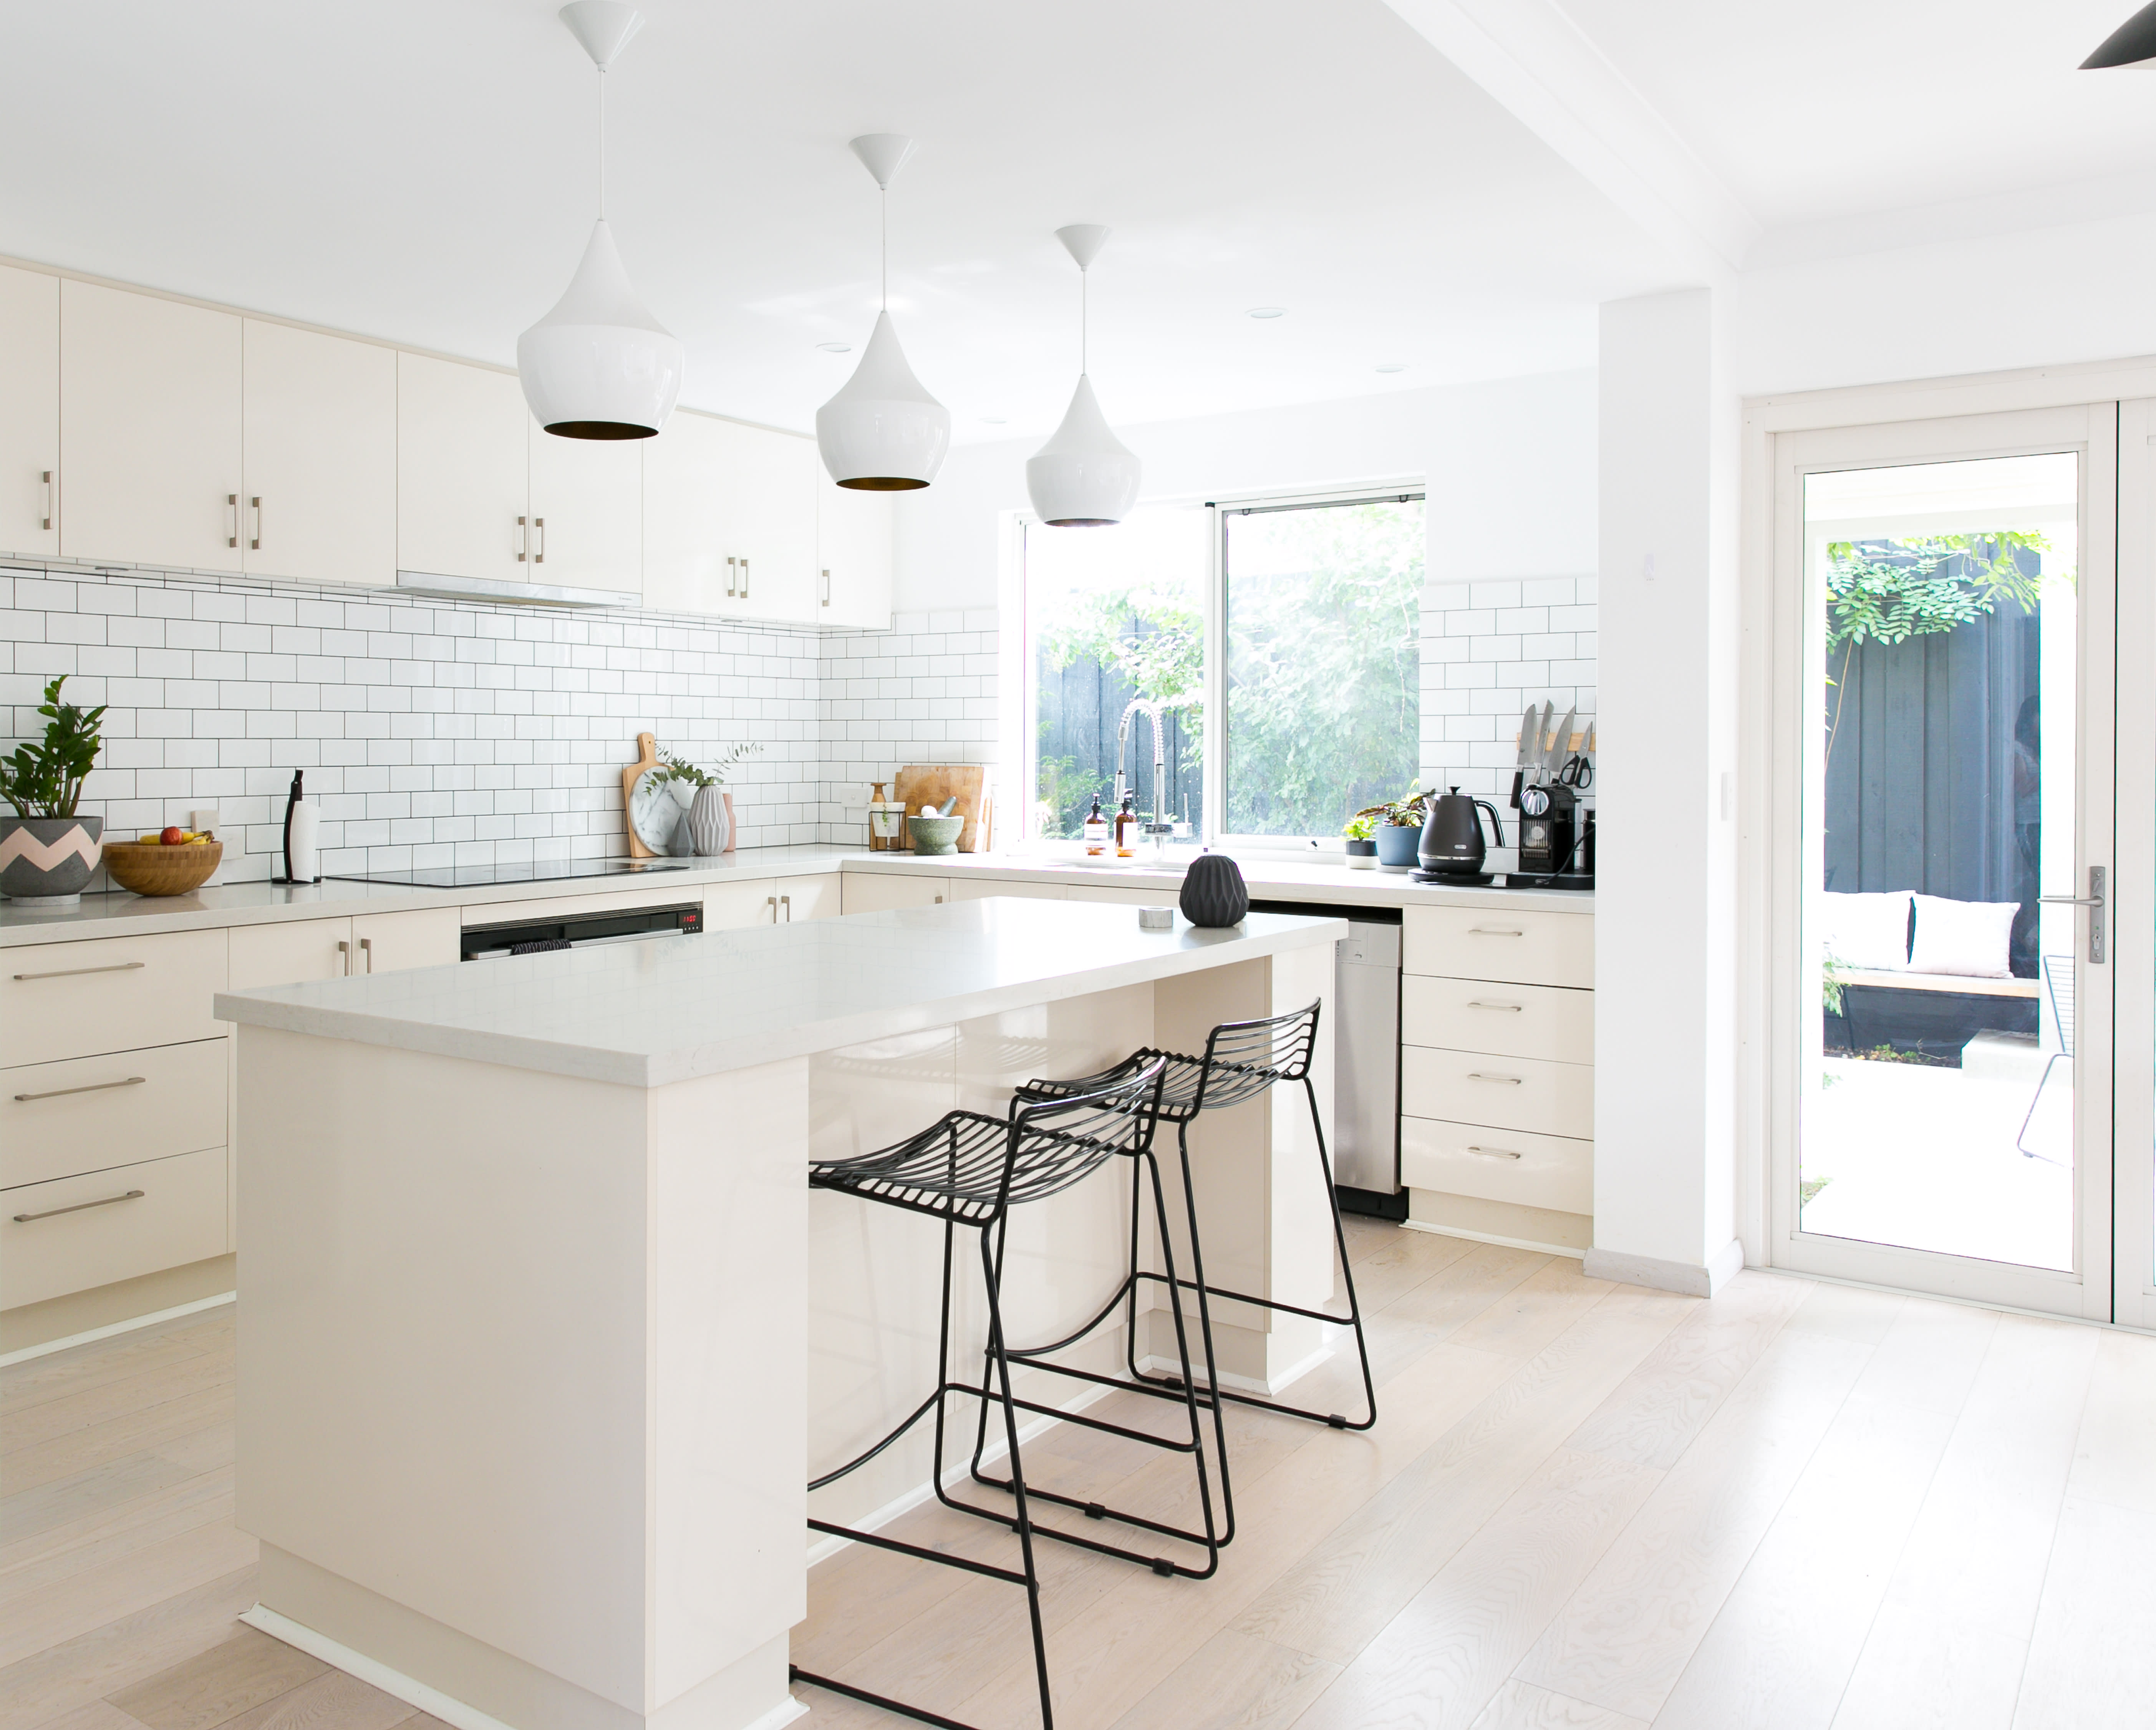 10 Things You Didnt Know About Quartz Countertops Apartment Therapy